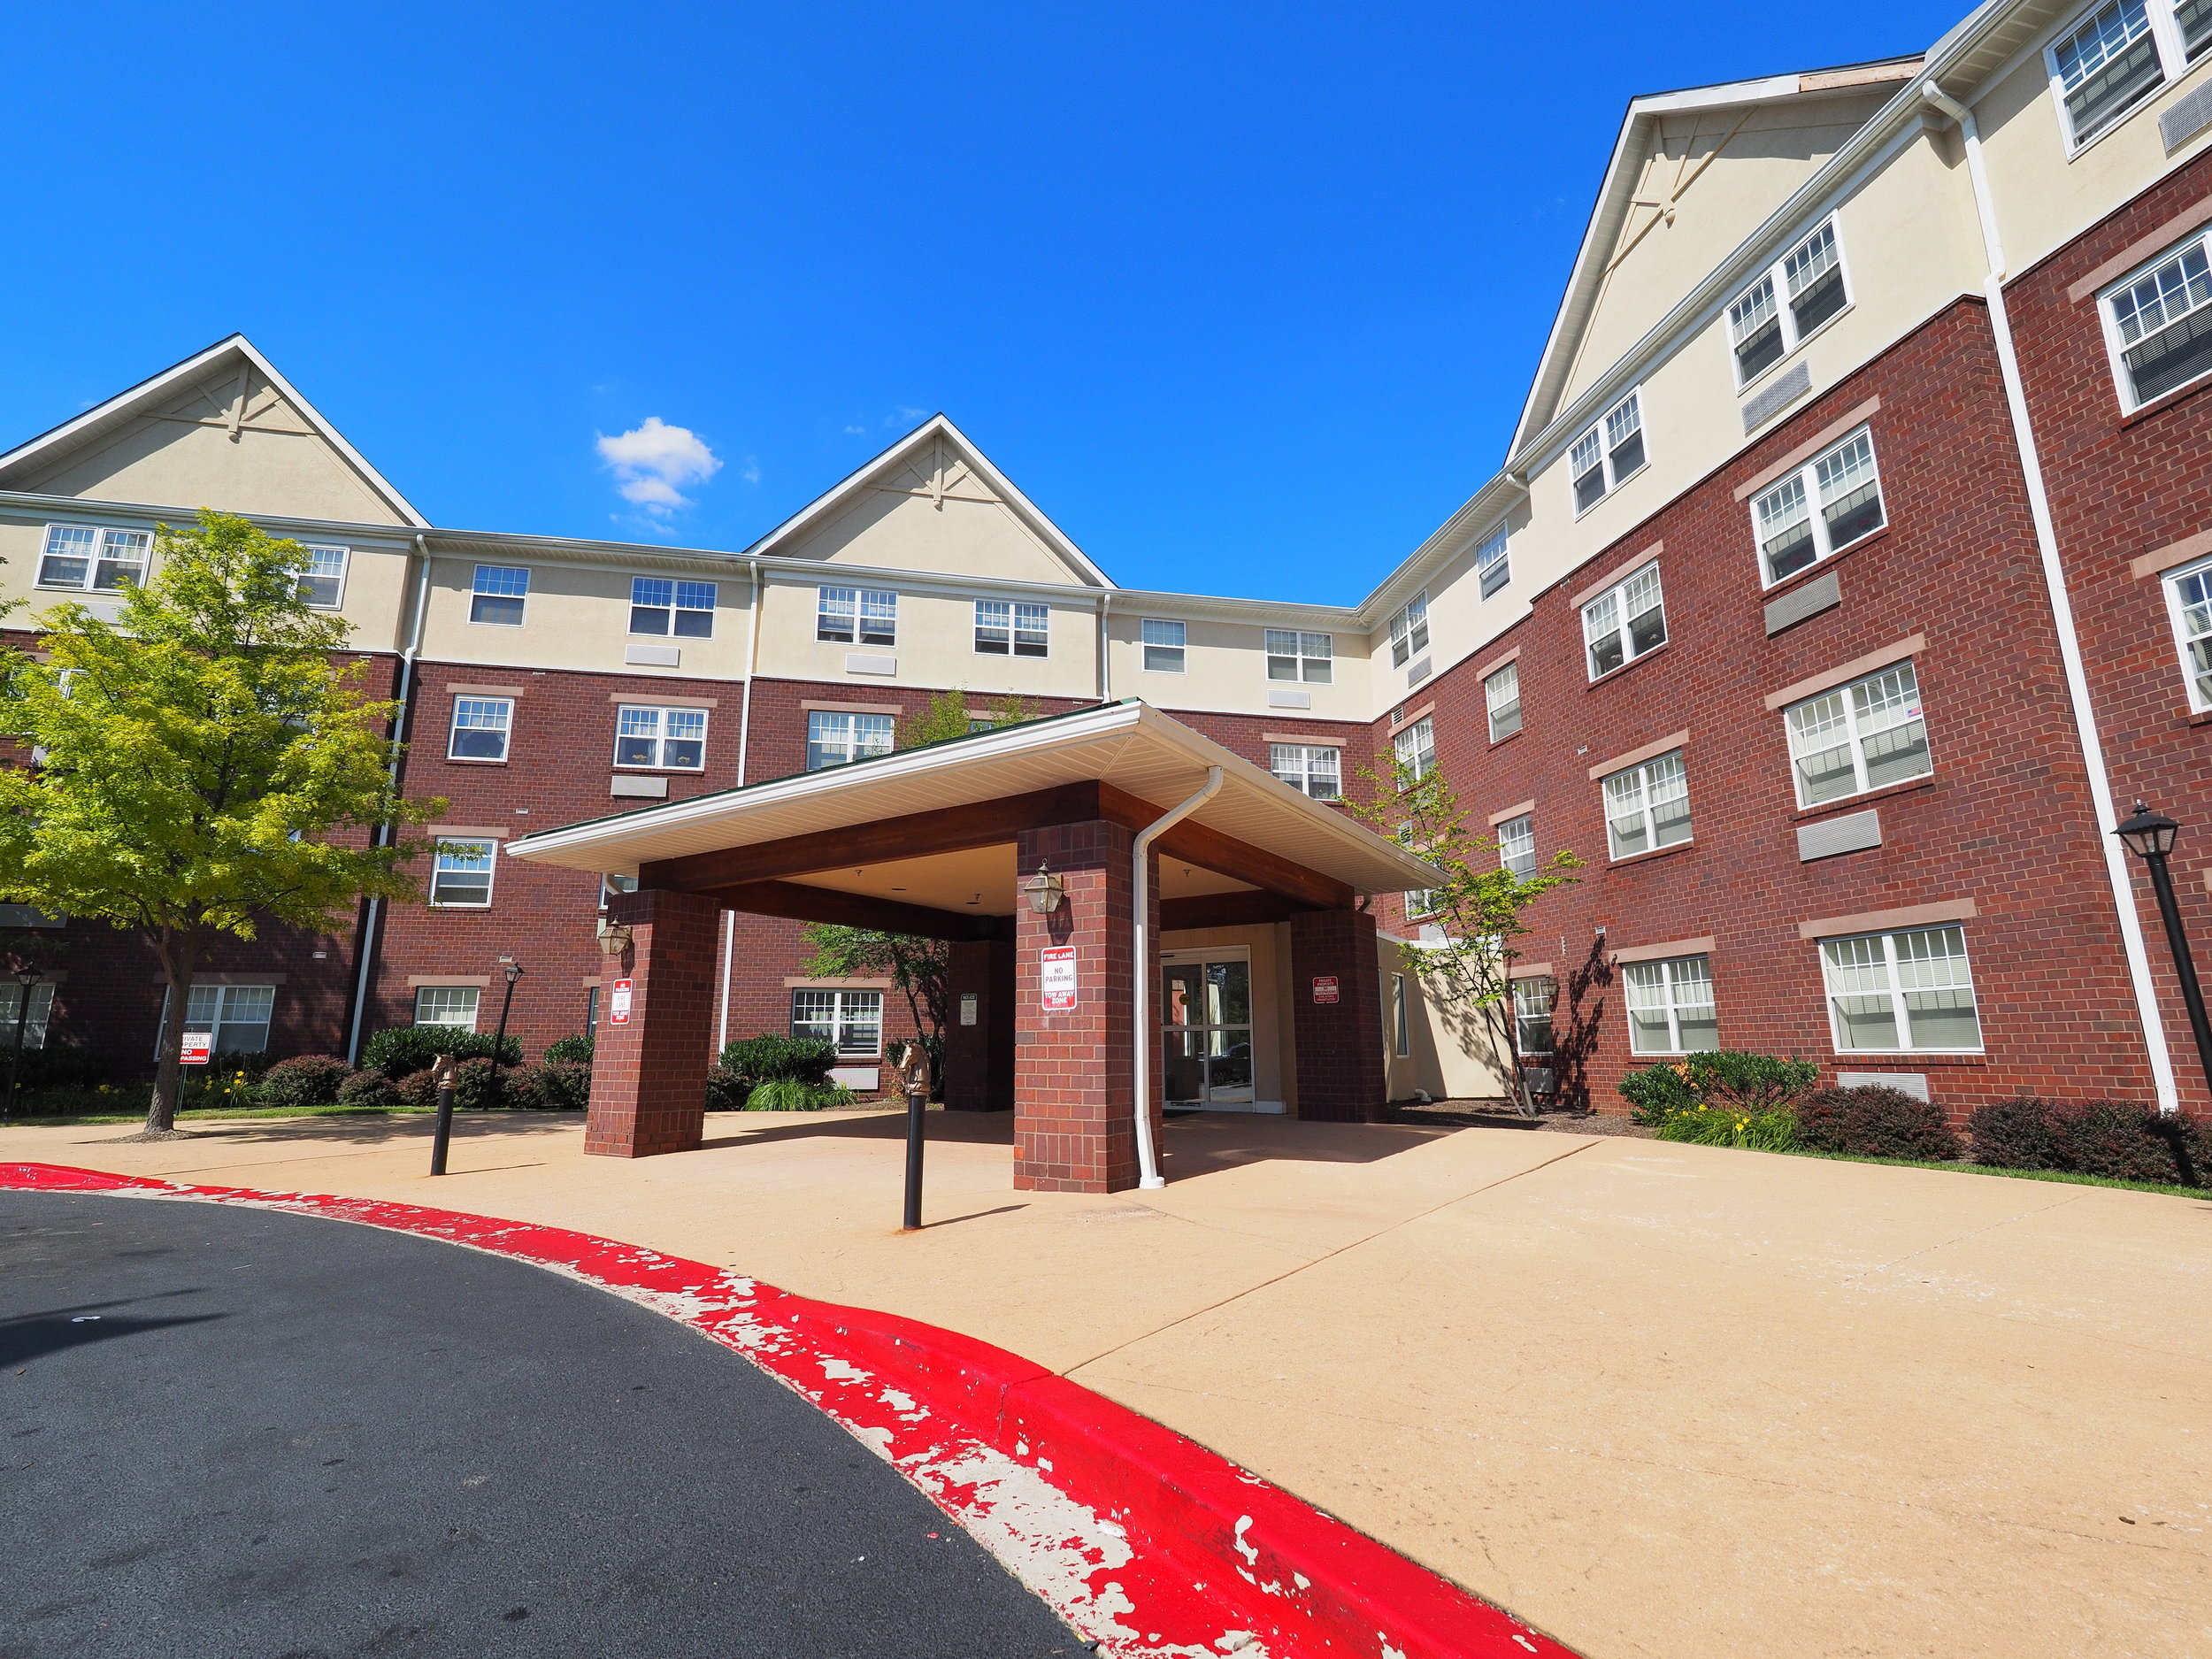 Fairspring Apartments - Catonsville, MD - Units: 100More Project Information Coming Soon